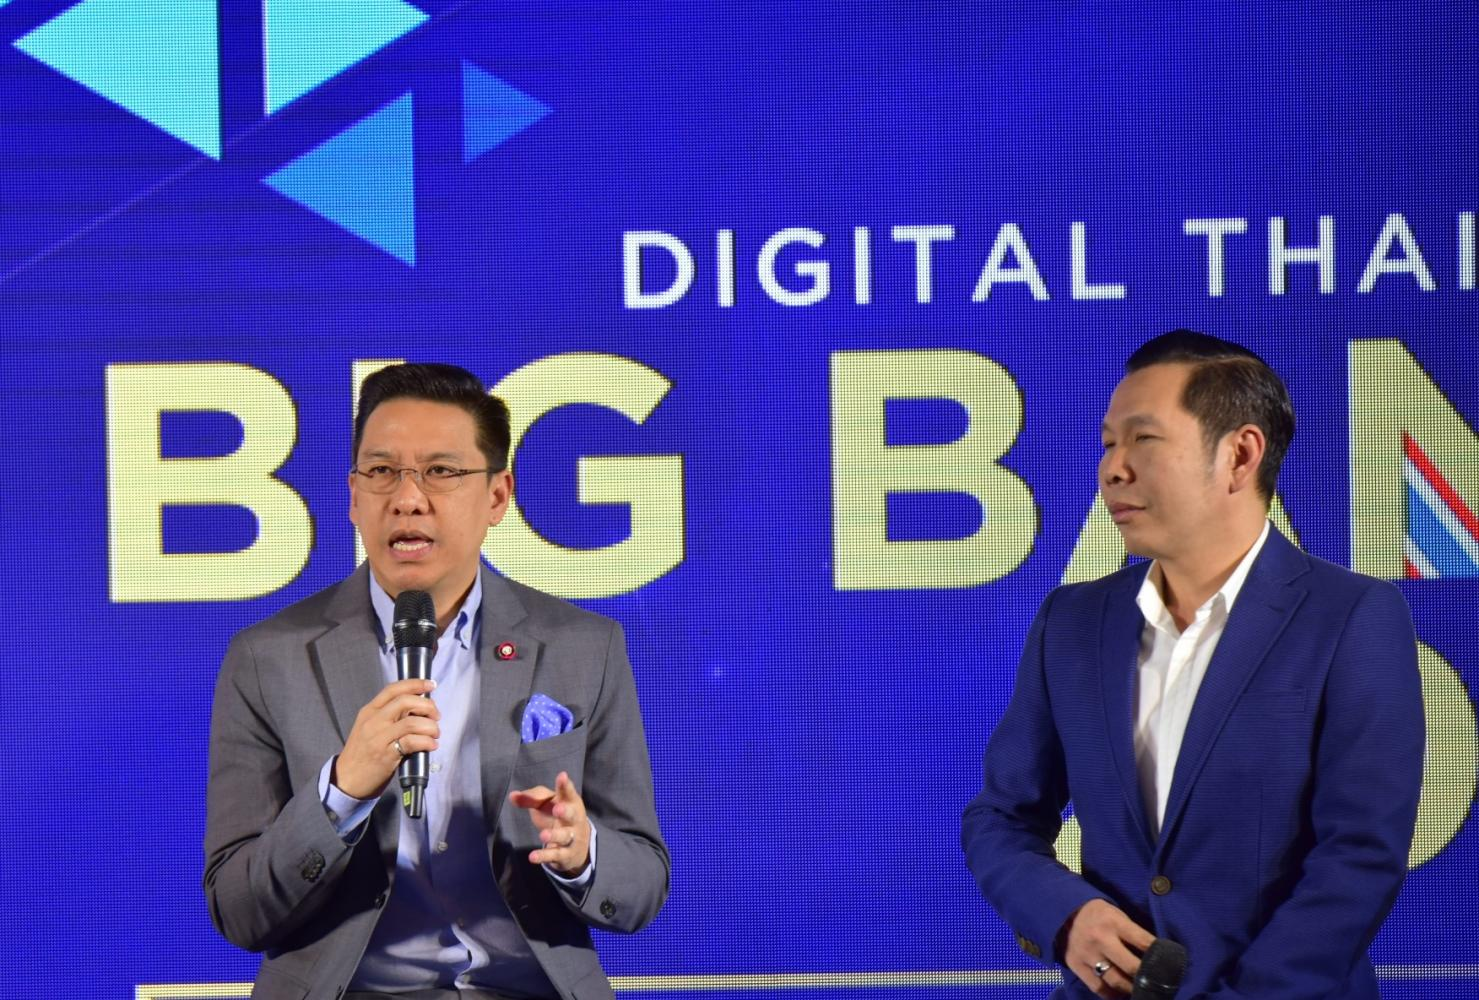 DE Minister Buddhipongse Punnakanta (left) and Depa chief Nuttapon Nimmanphatcharin at Wednesday's press conference announcing plans for Digital Thailand Big Bang 2019.